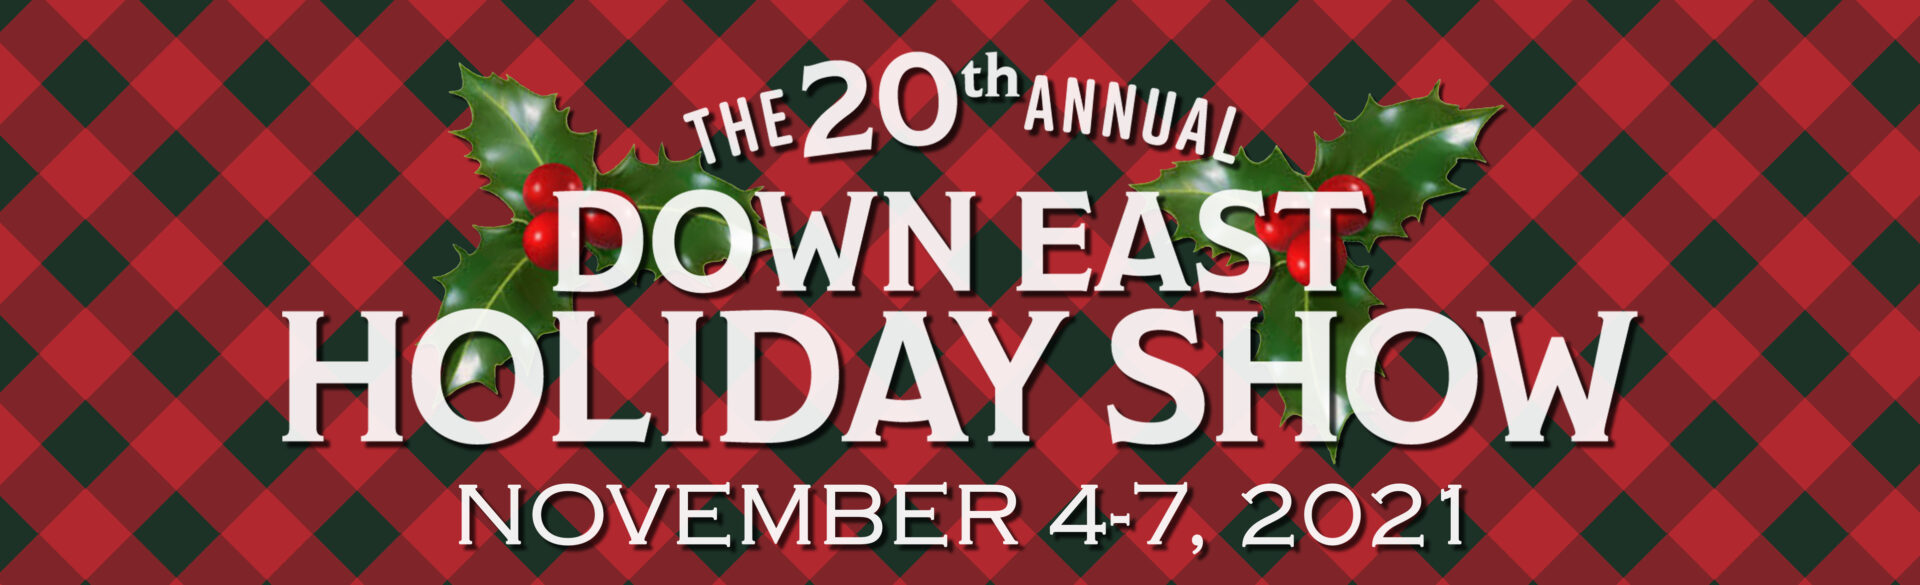 Plaid Down East Holiday Show graphic with holly leaves.